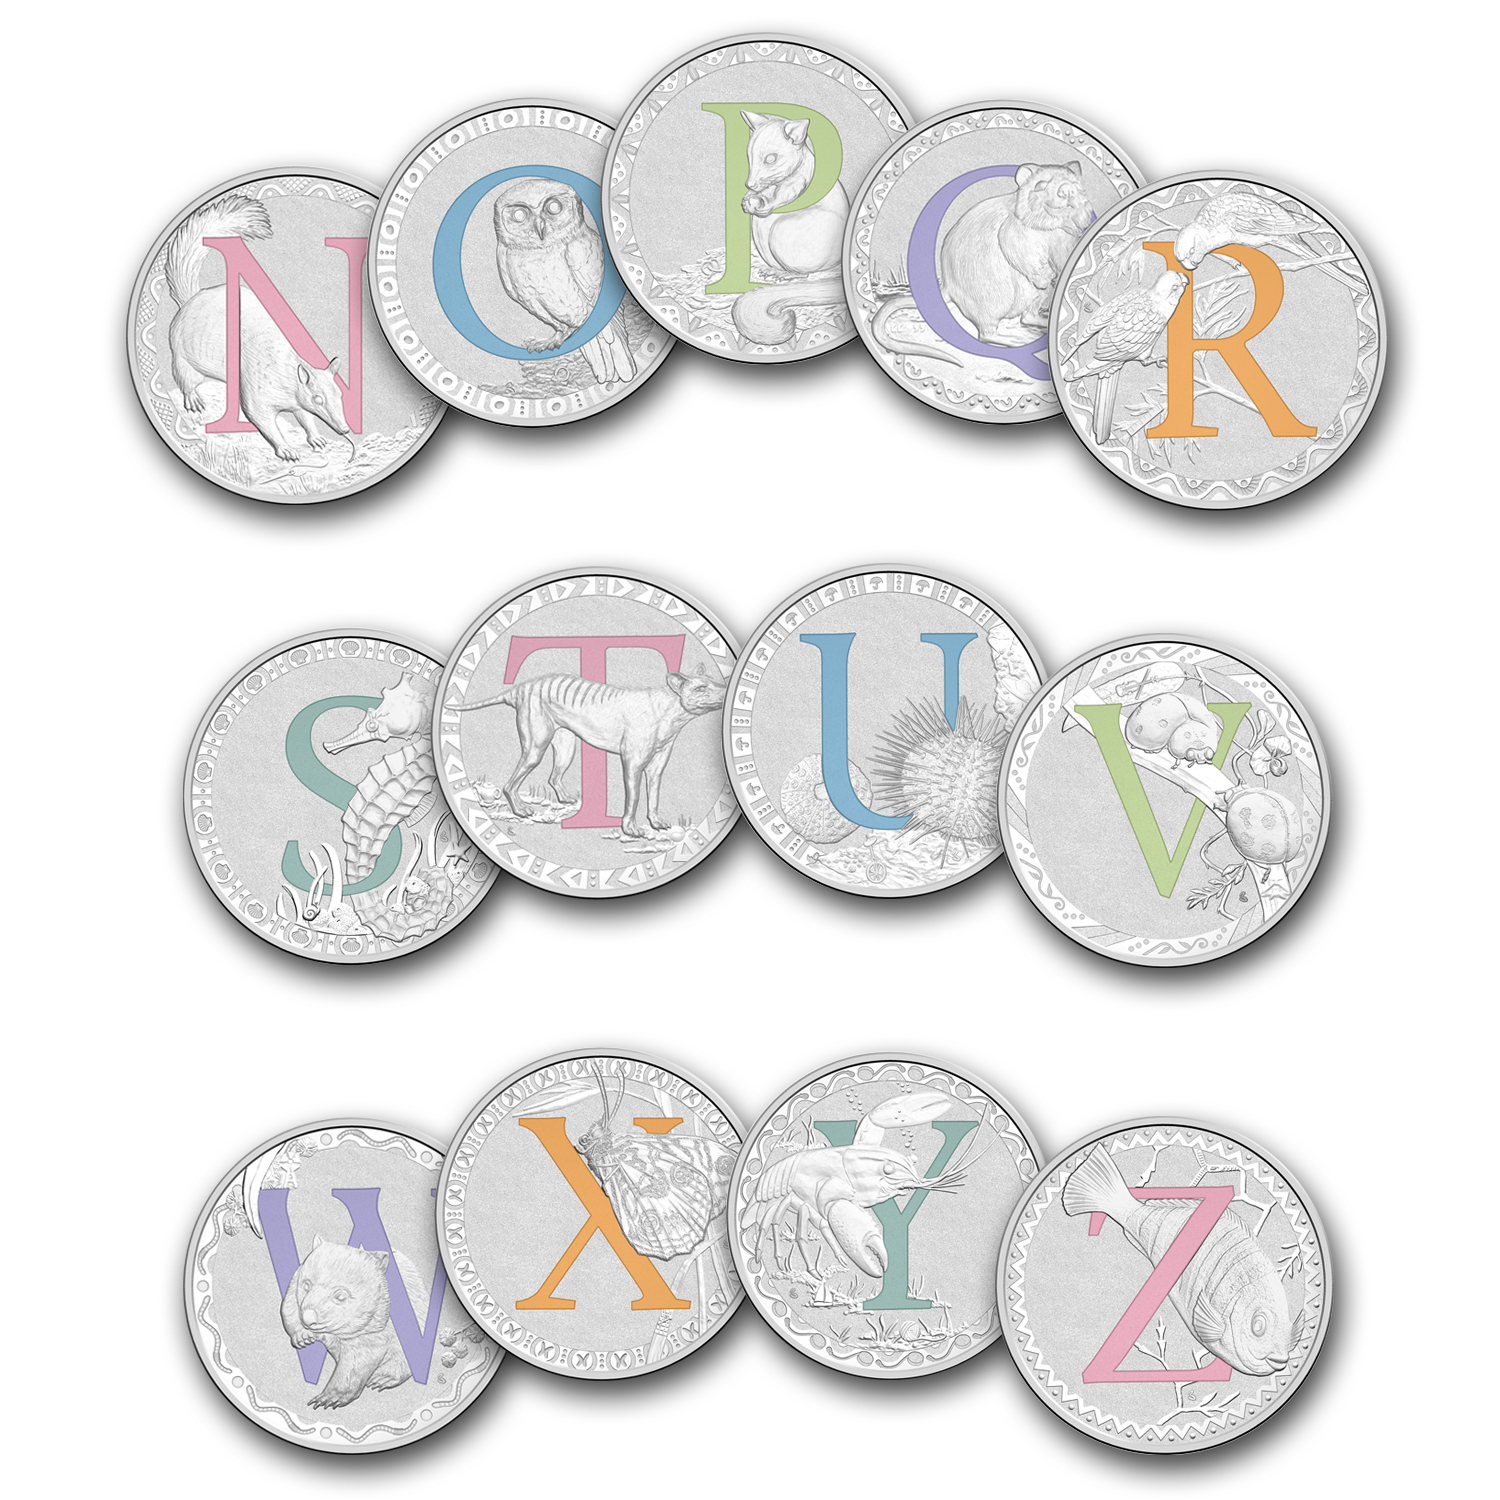 2015 Australia Silver $1 Alphabet Collection Set